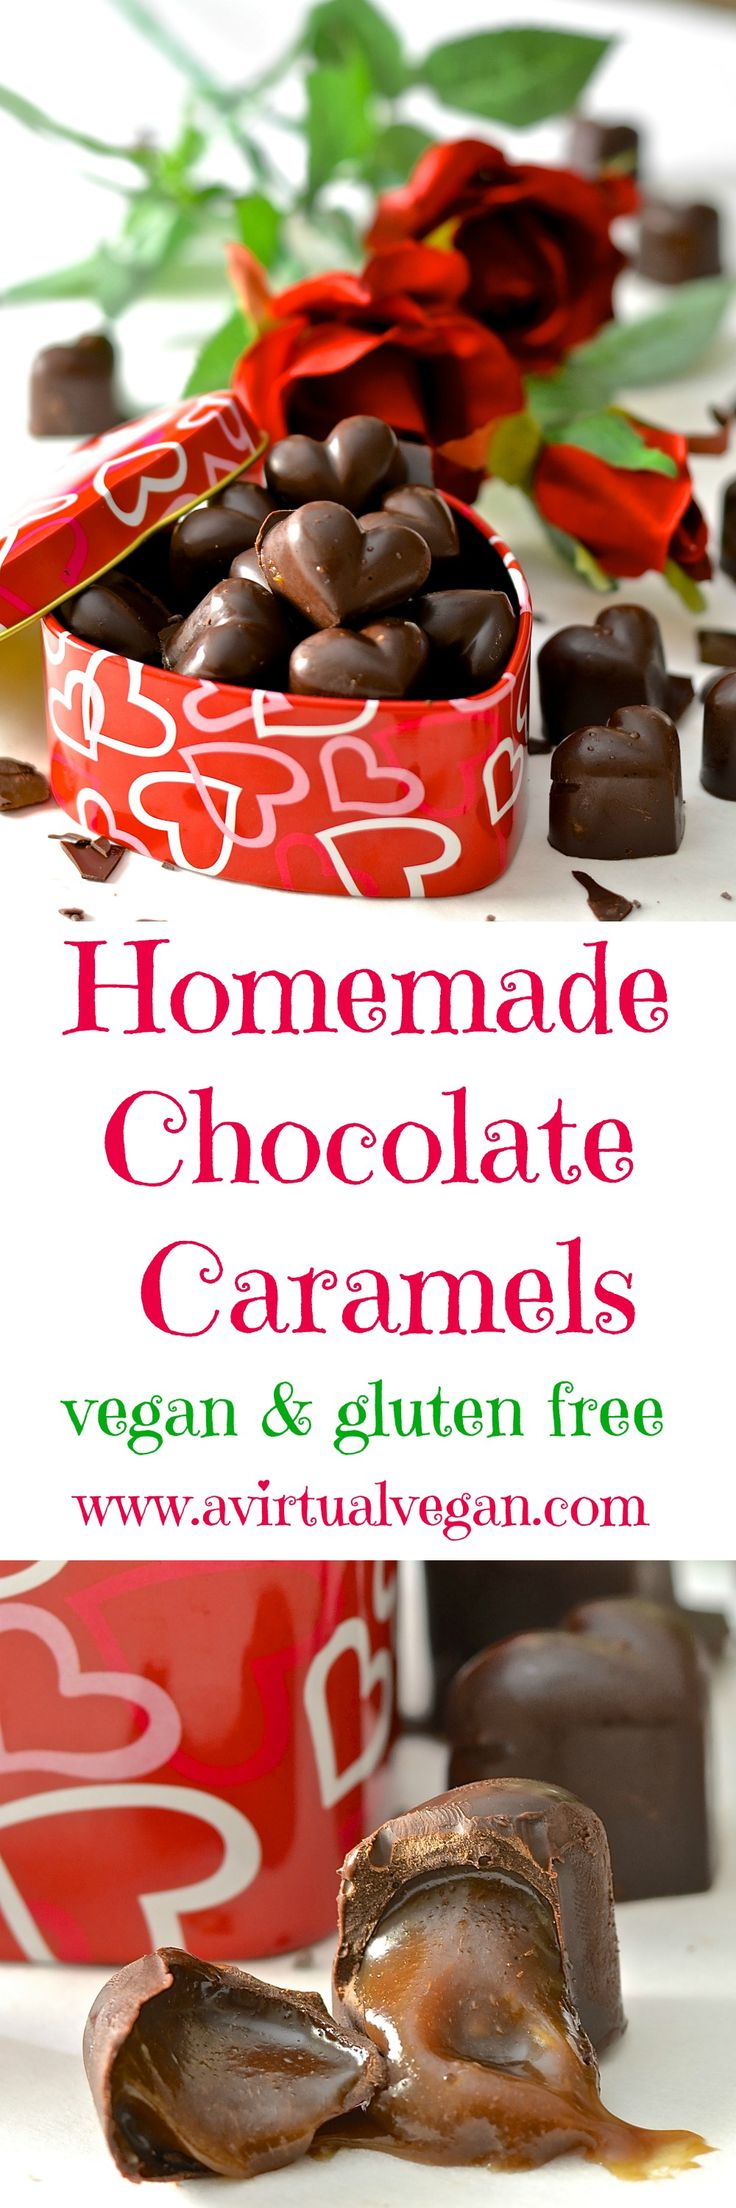 Rich & gooey homemade vegan chocolate caramels. So decadent & delicious and surprisingly easy to make. Perfect as an indulgent treat or as a gift for someone special.